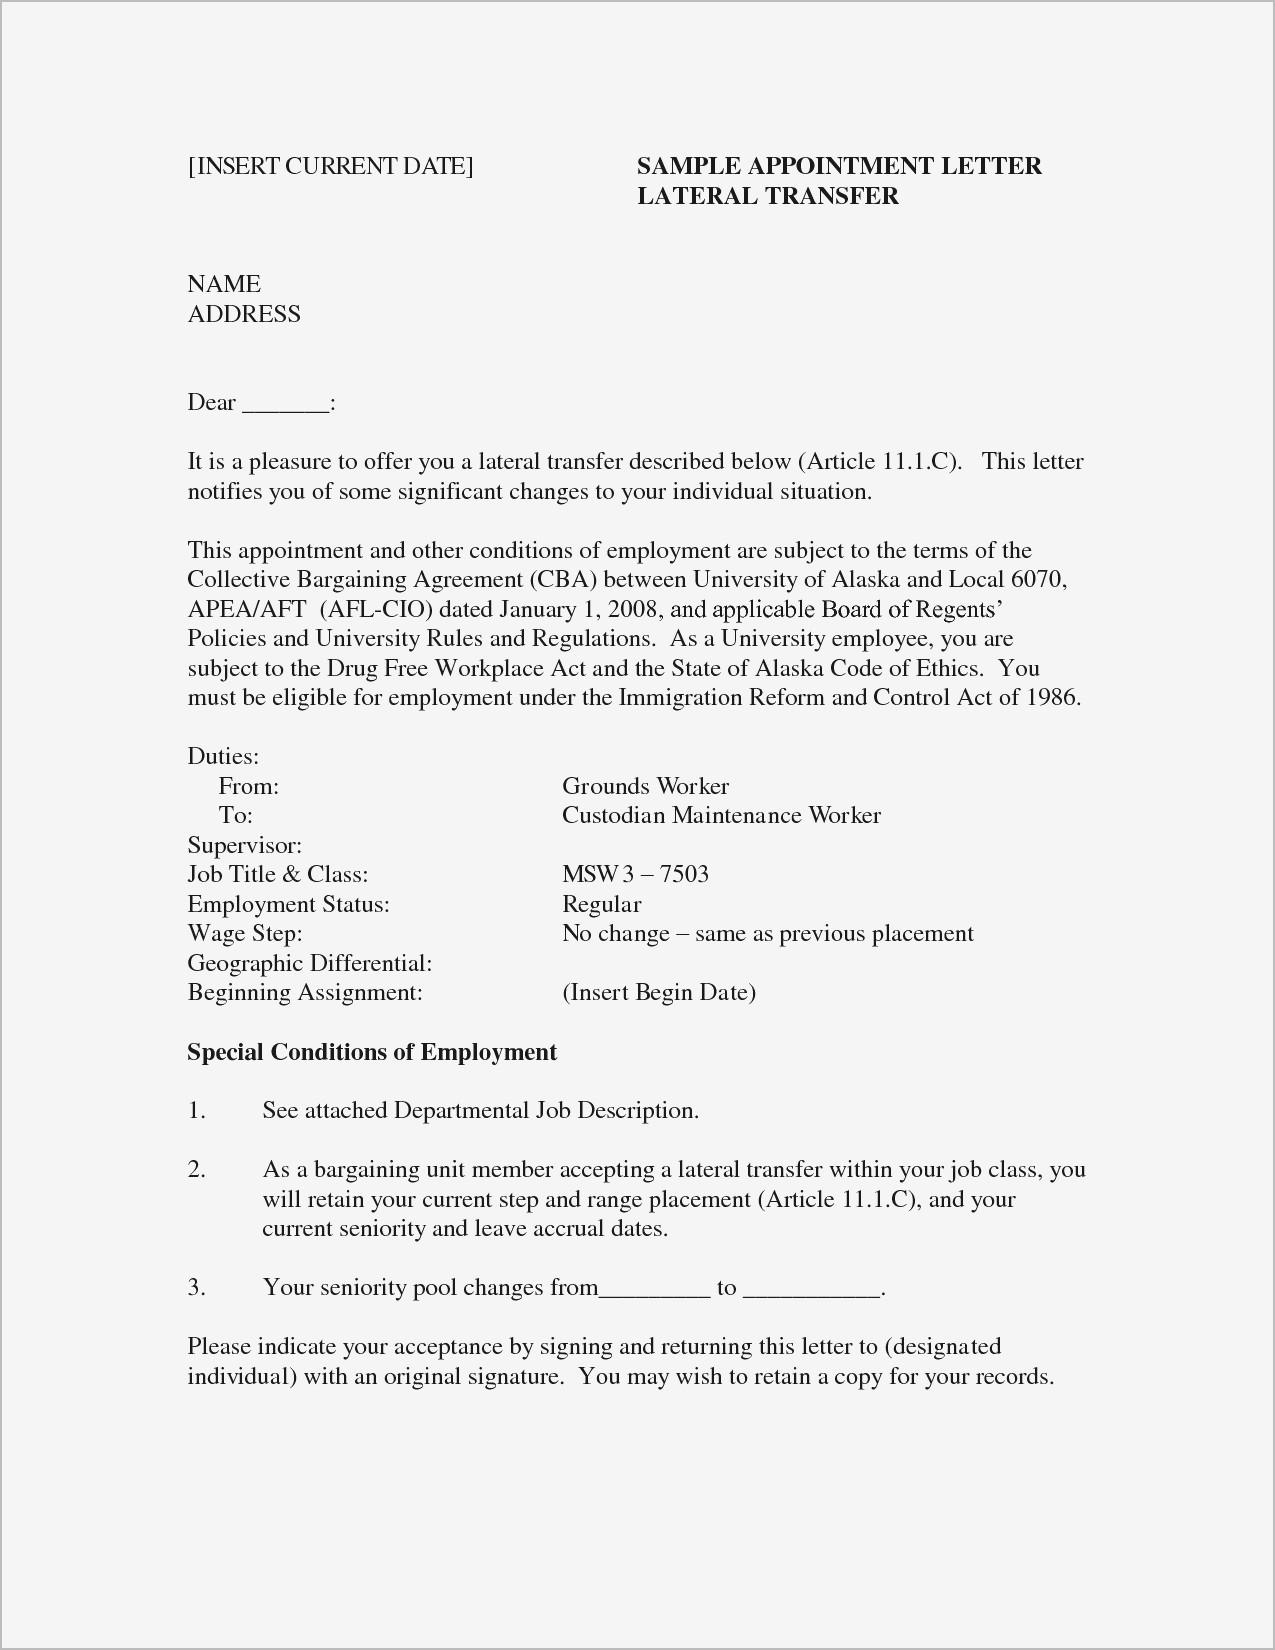 Letter Job Offer Template - Sample Cover Letter for Job Fer Refrence Job Fer Letter Template